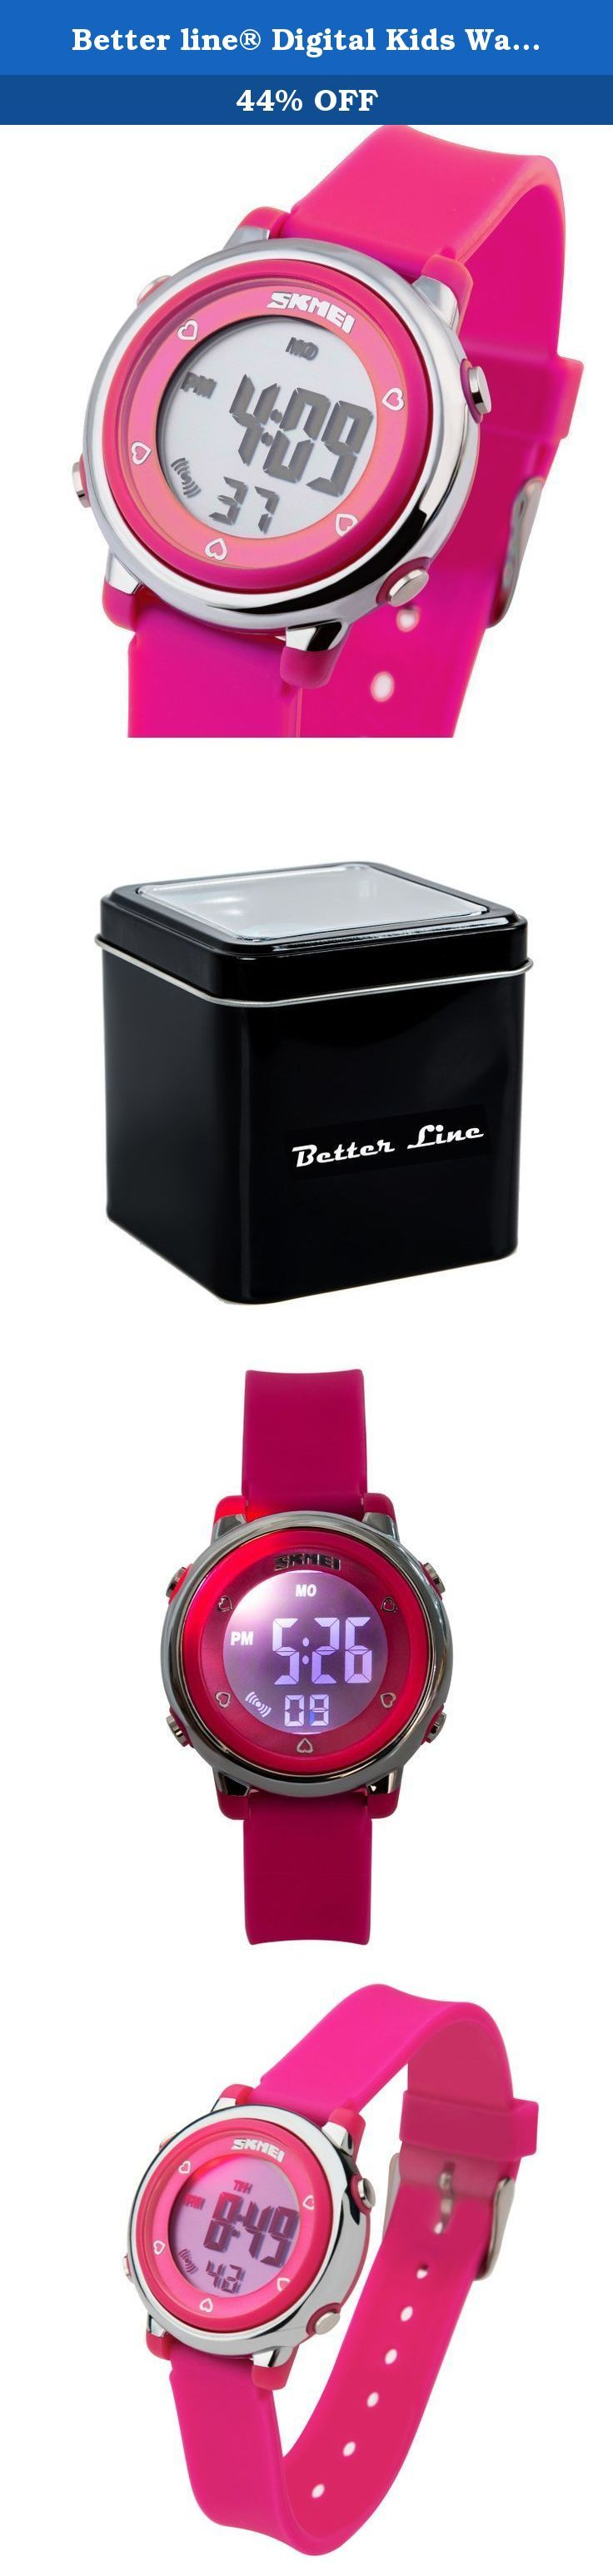 Better line® Digital Kids Watch Band with Hourly Chime, Stopwatch, Daily Alarm & Calendar (Rose Red). Rose Red LCD Digital Kids Watch Band with Hourly Chime, Daily Alarm & Calendar Functoins The BETTER LINE Children's Watch is the perfect first watch for any child. Made to perfectly fit a kid's wrist, this watch is built tough to stand up to frequent wear, and it's comfortable for children to wear all day long. Easy to read and simple to use, it's a watch your child can enjoy as he or she...